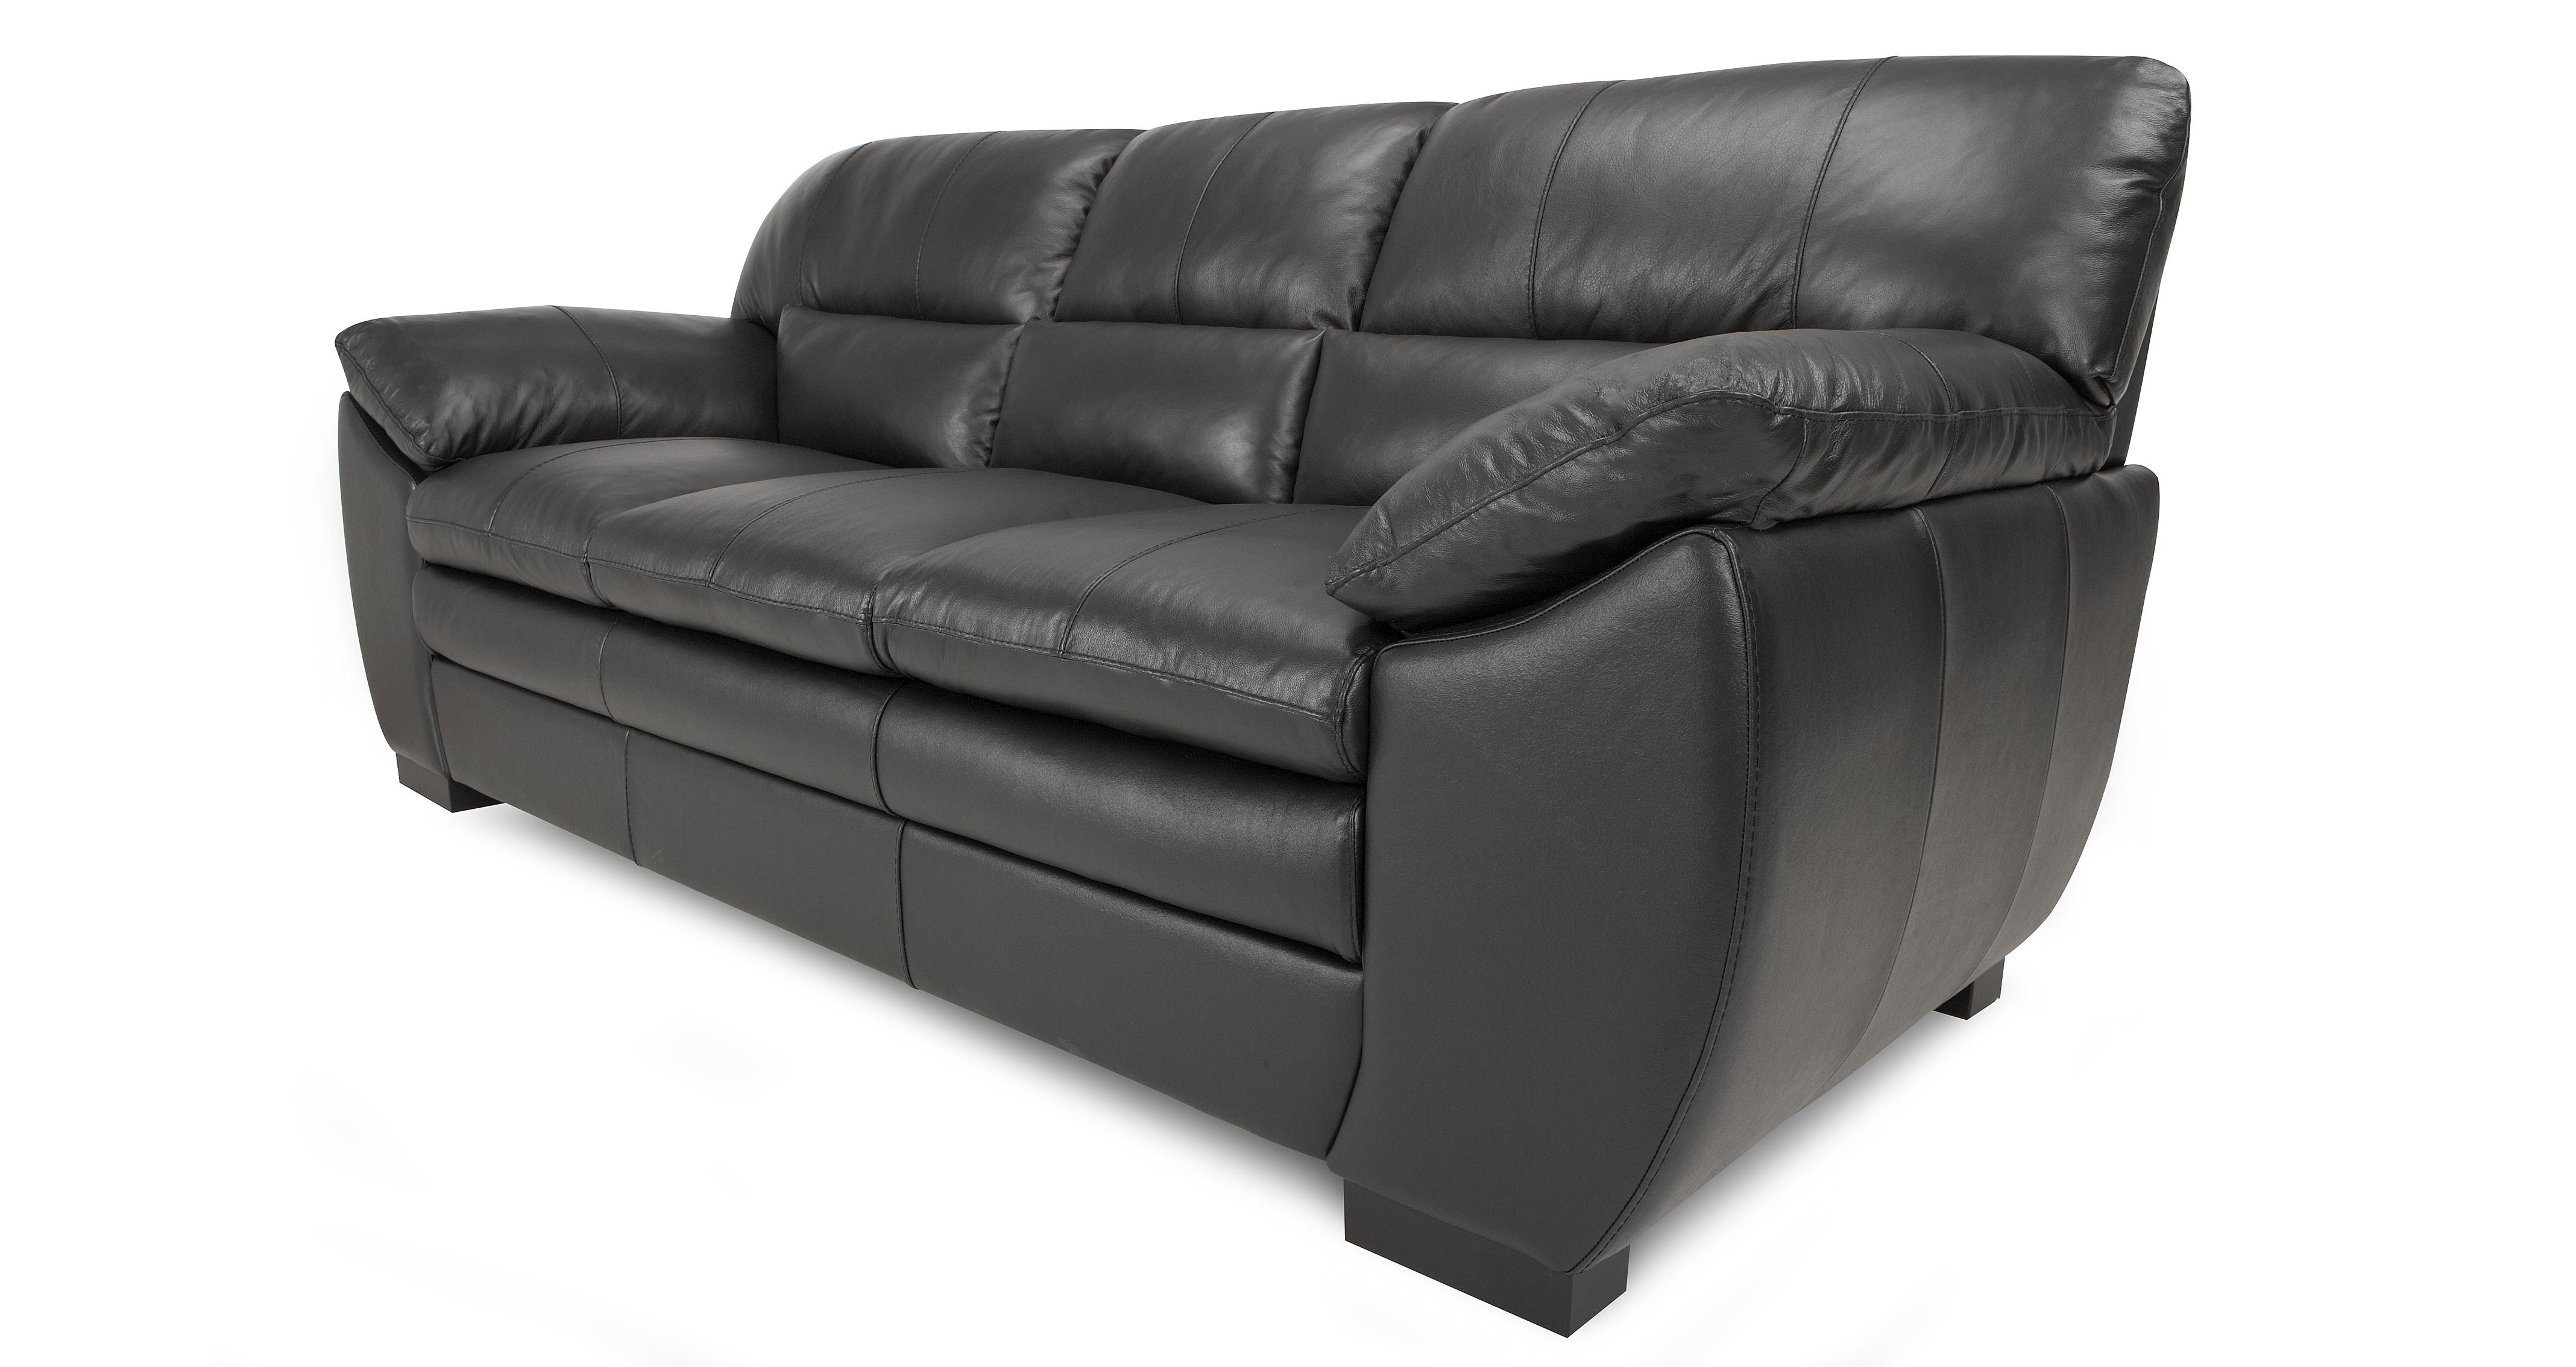 new sofas dfs bloomingdales leather sofa force black 3 seater